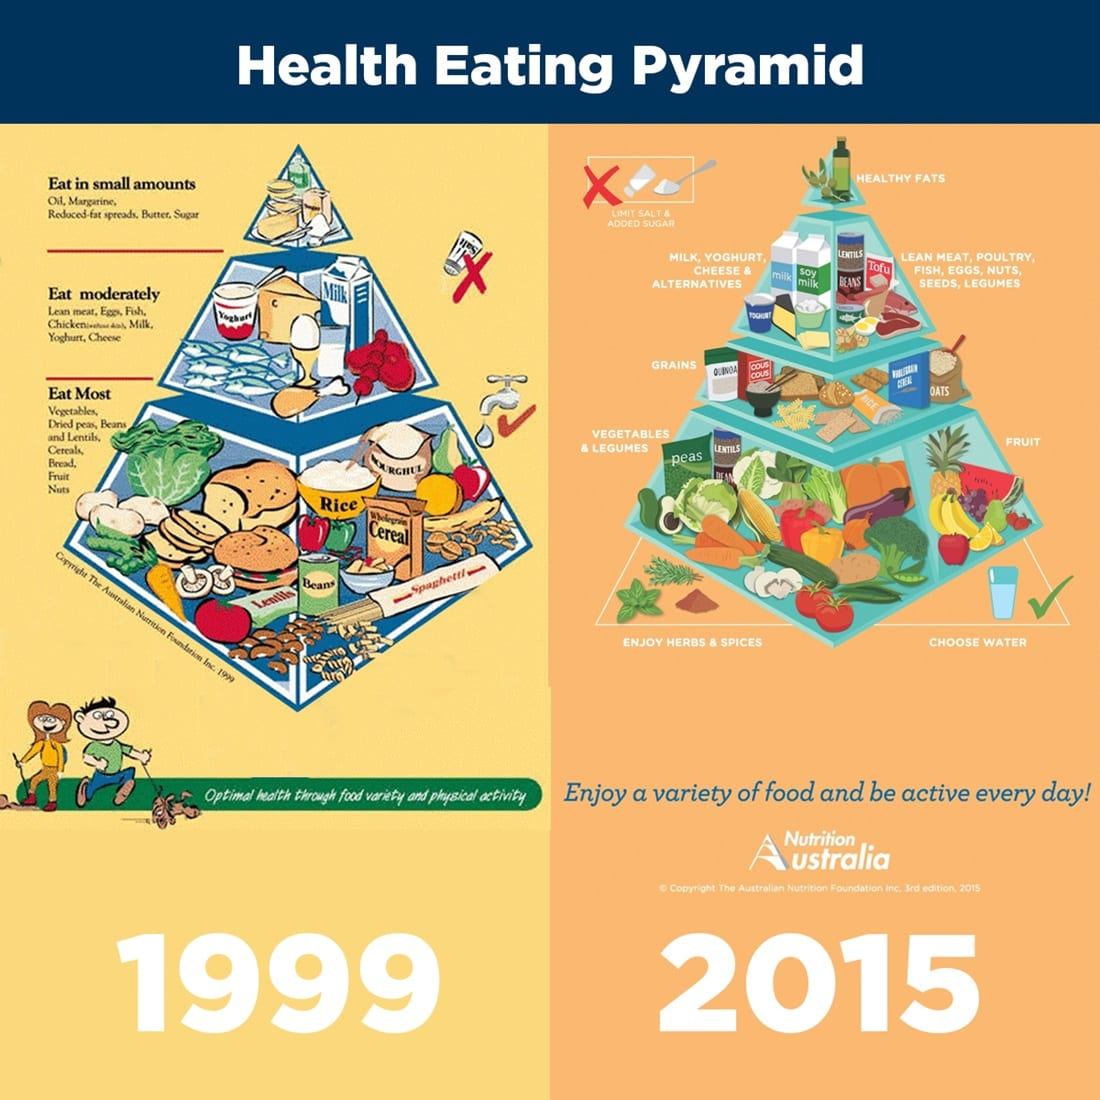 Healthy Food Pyramid Is Making You Fat